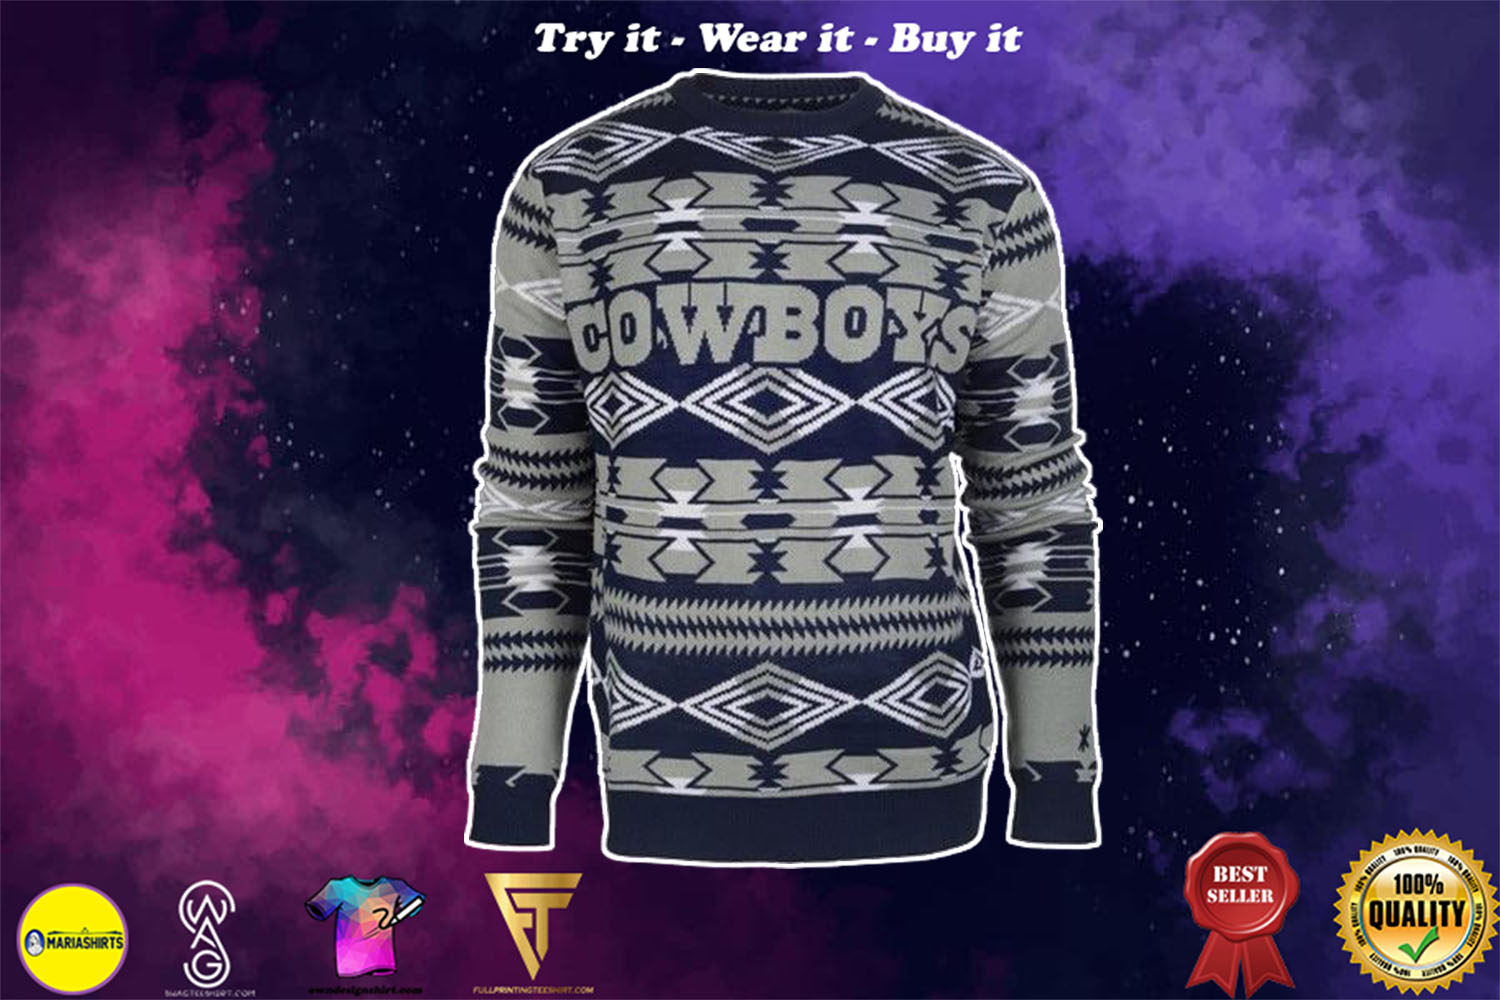 [special edition] dallas cowboys aztec print ugly christmas sweater - maria